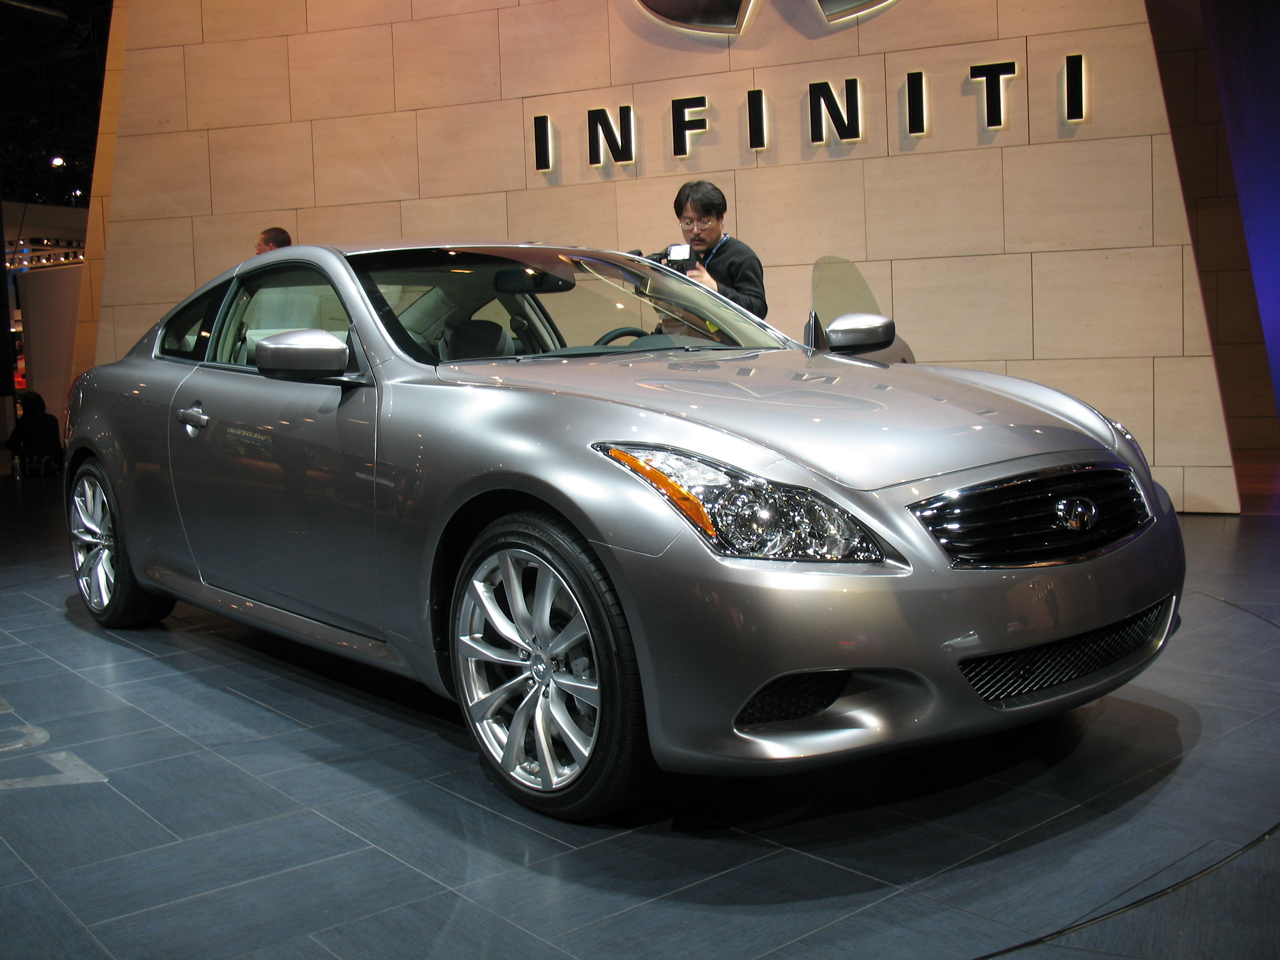 2007 Infiniti G37 Coupe Photo Gallery Autoblog